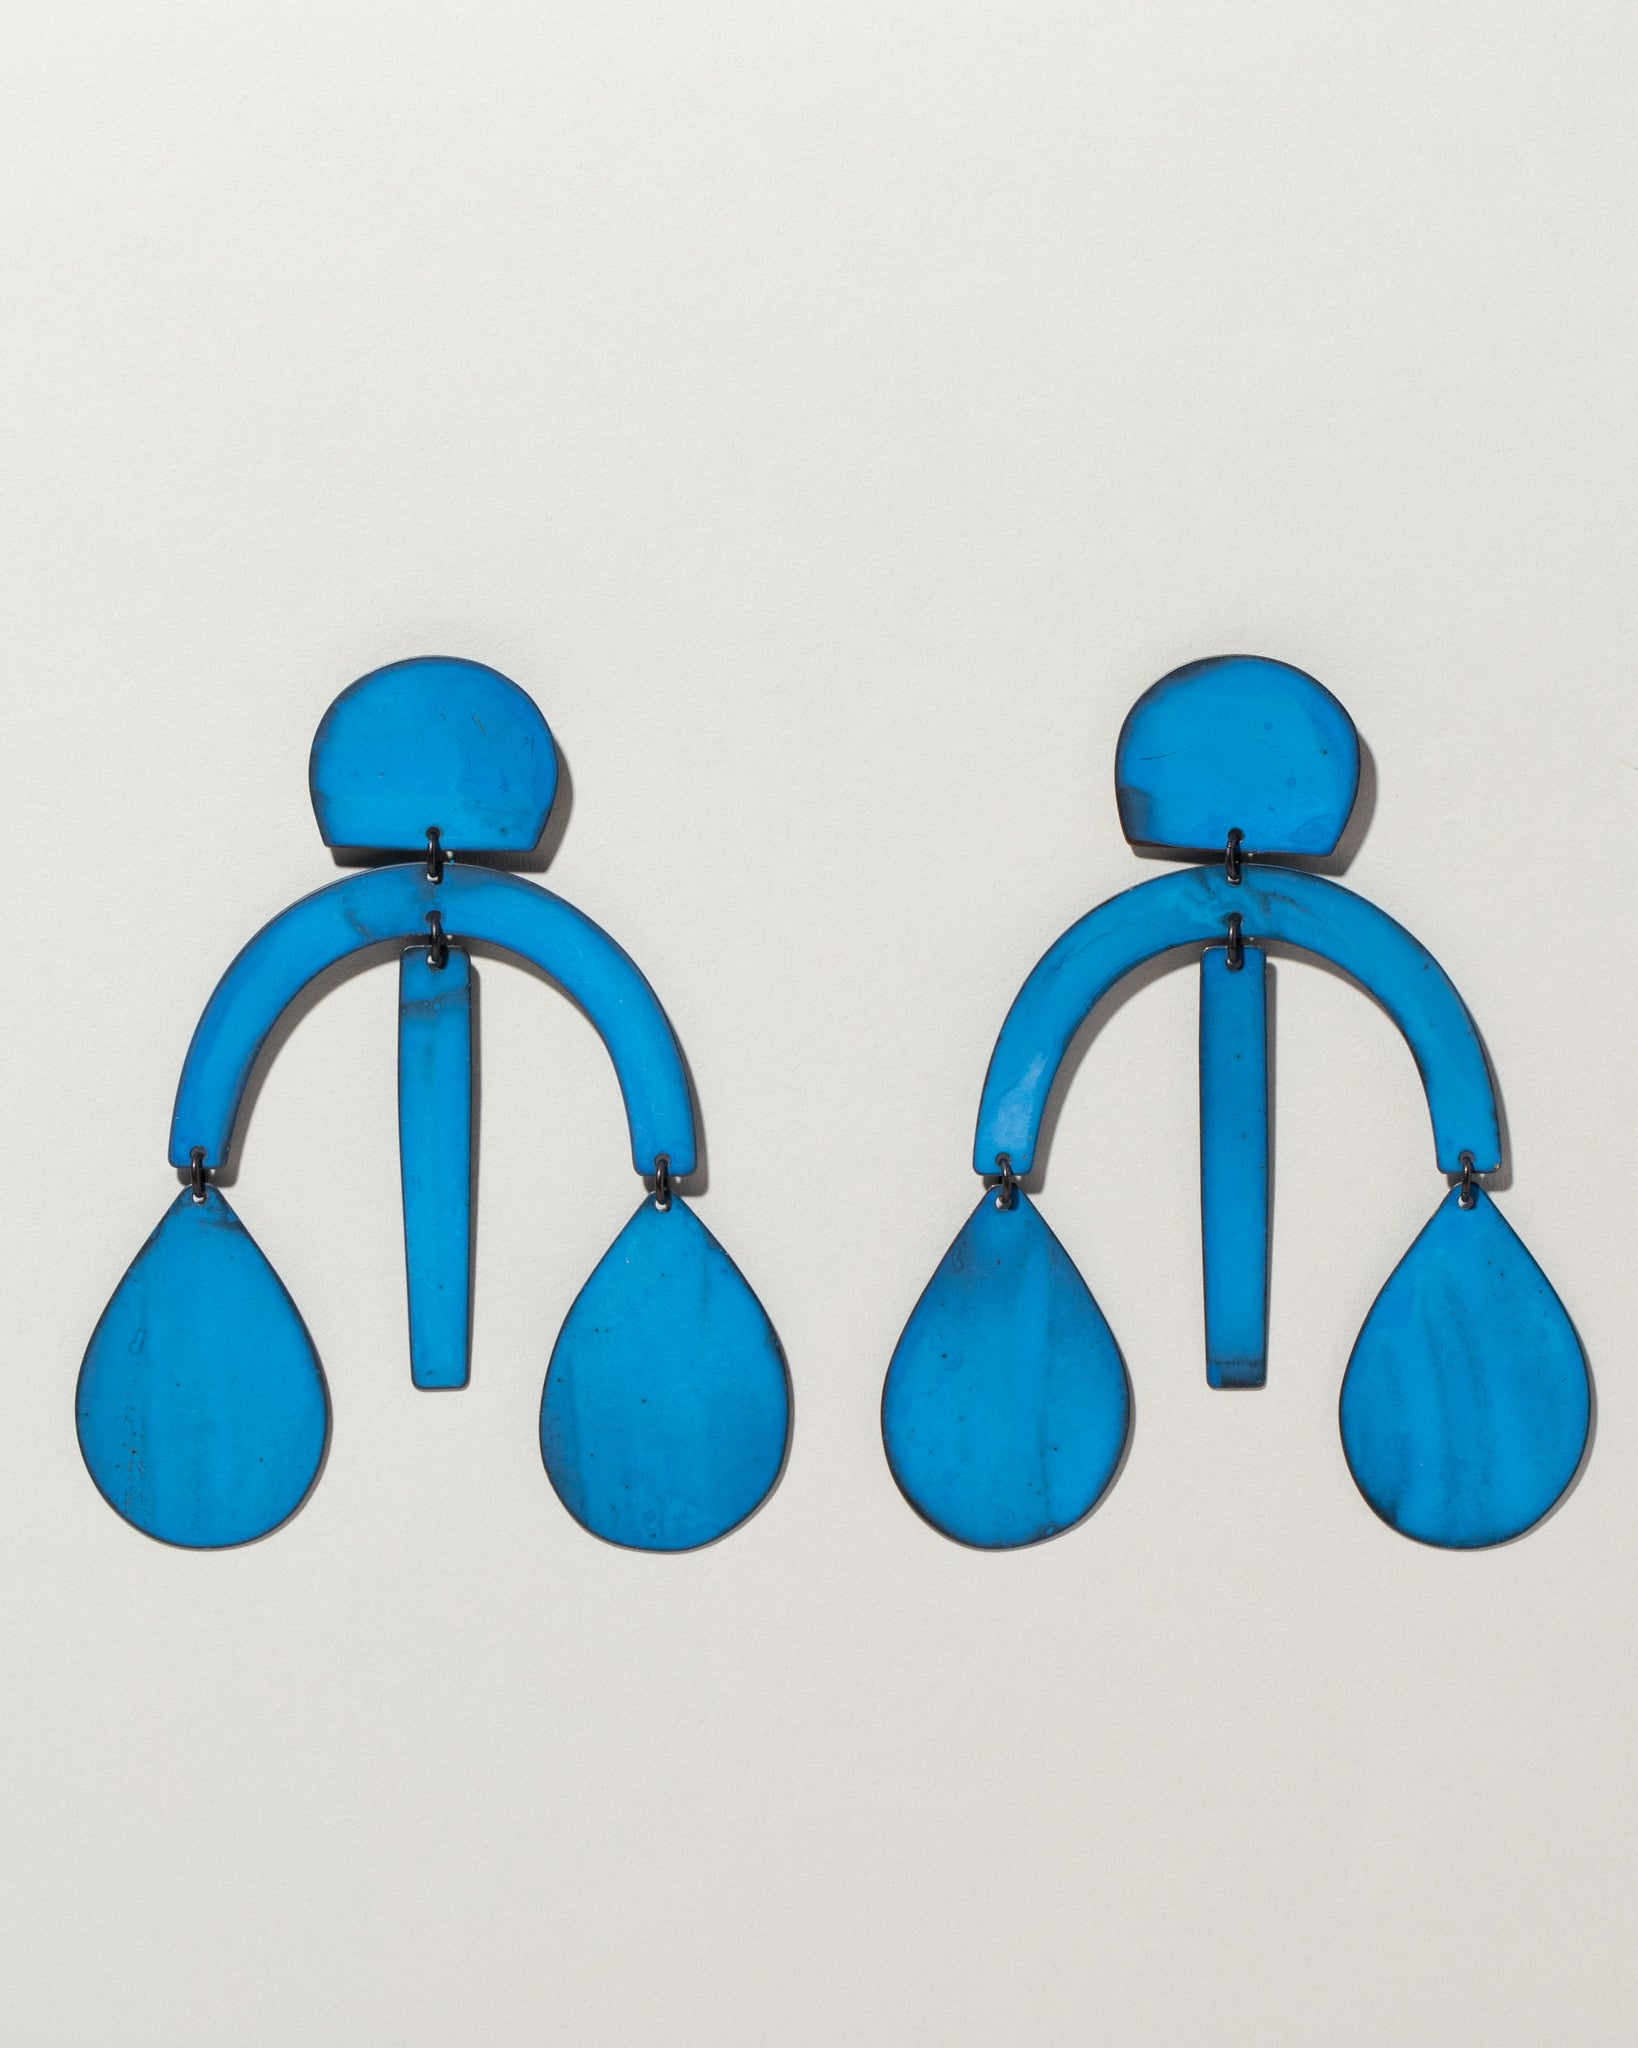 Arc Drop Chandelier Earrings in blue oxide